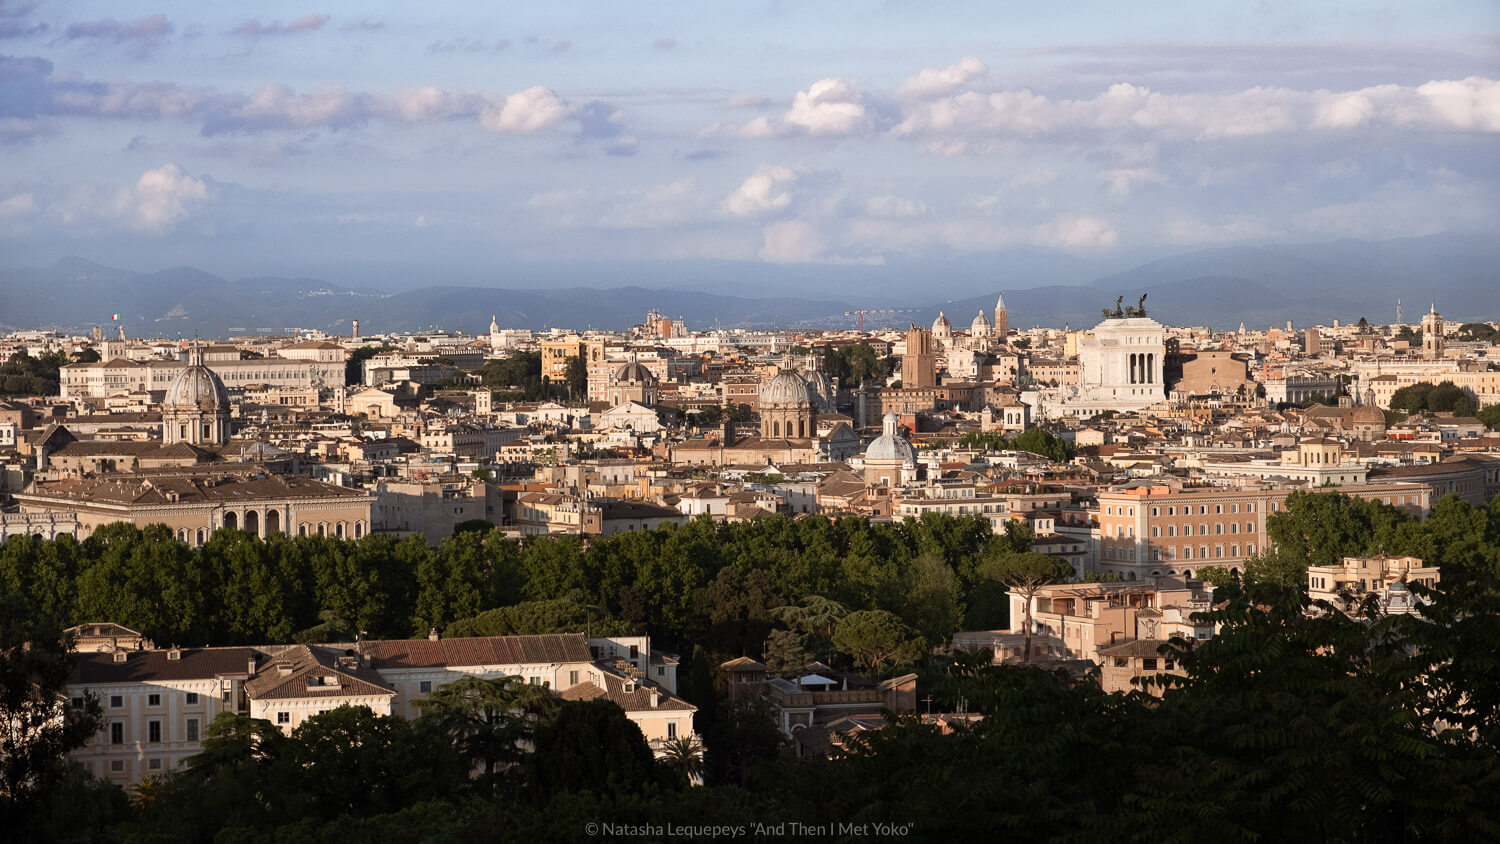 """Views from the Janiculum Terrace. Travel photography and guide by © Natasha Lequepeys for """"And Then I Met Yoko"""". #rome #italy #travelblog #travelphotography"""